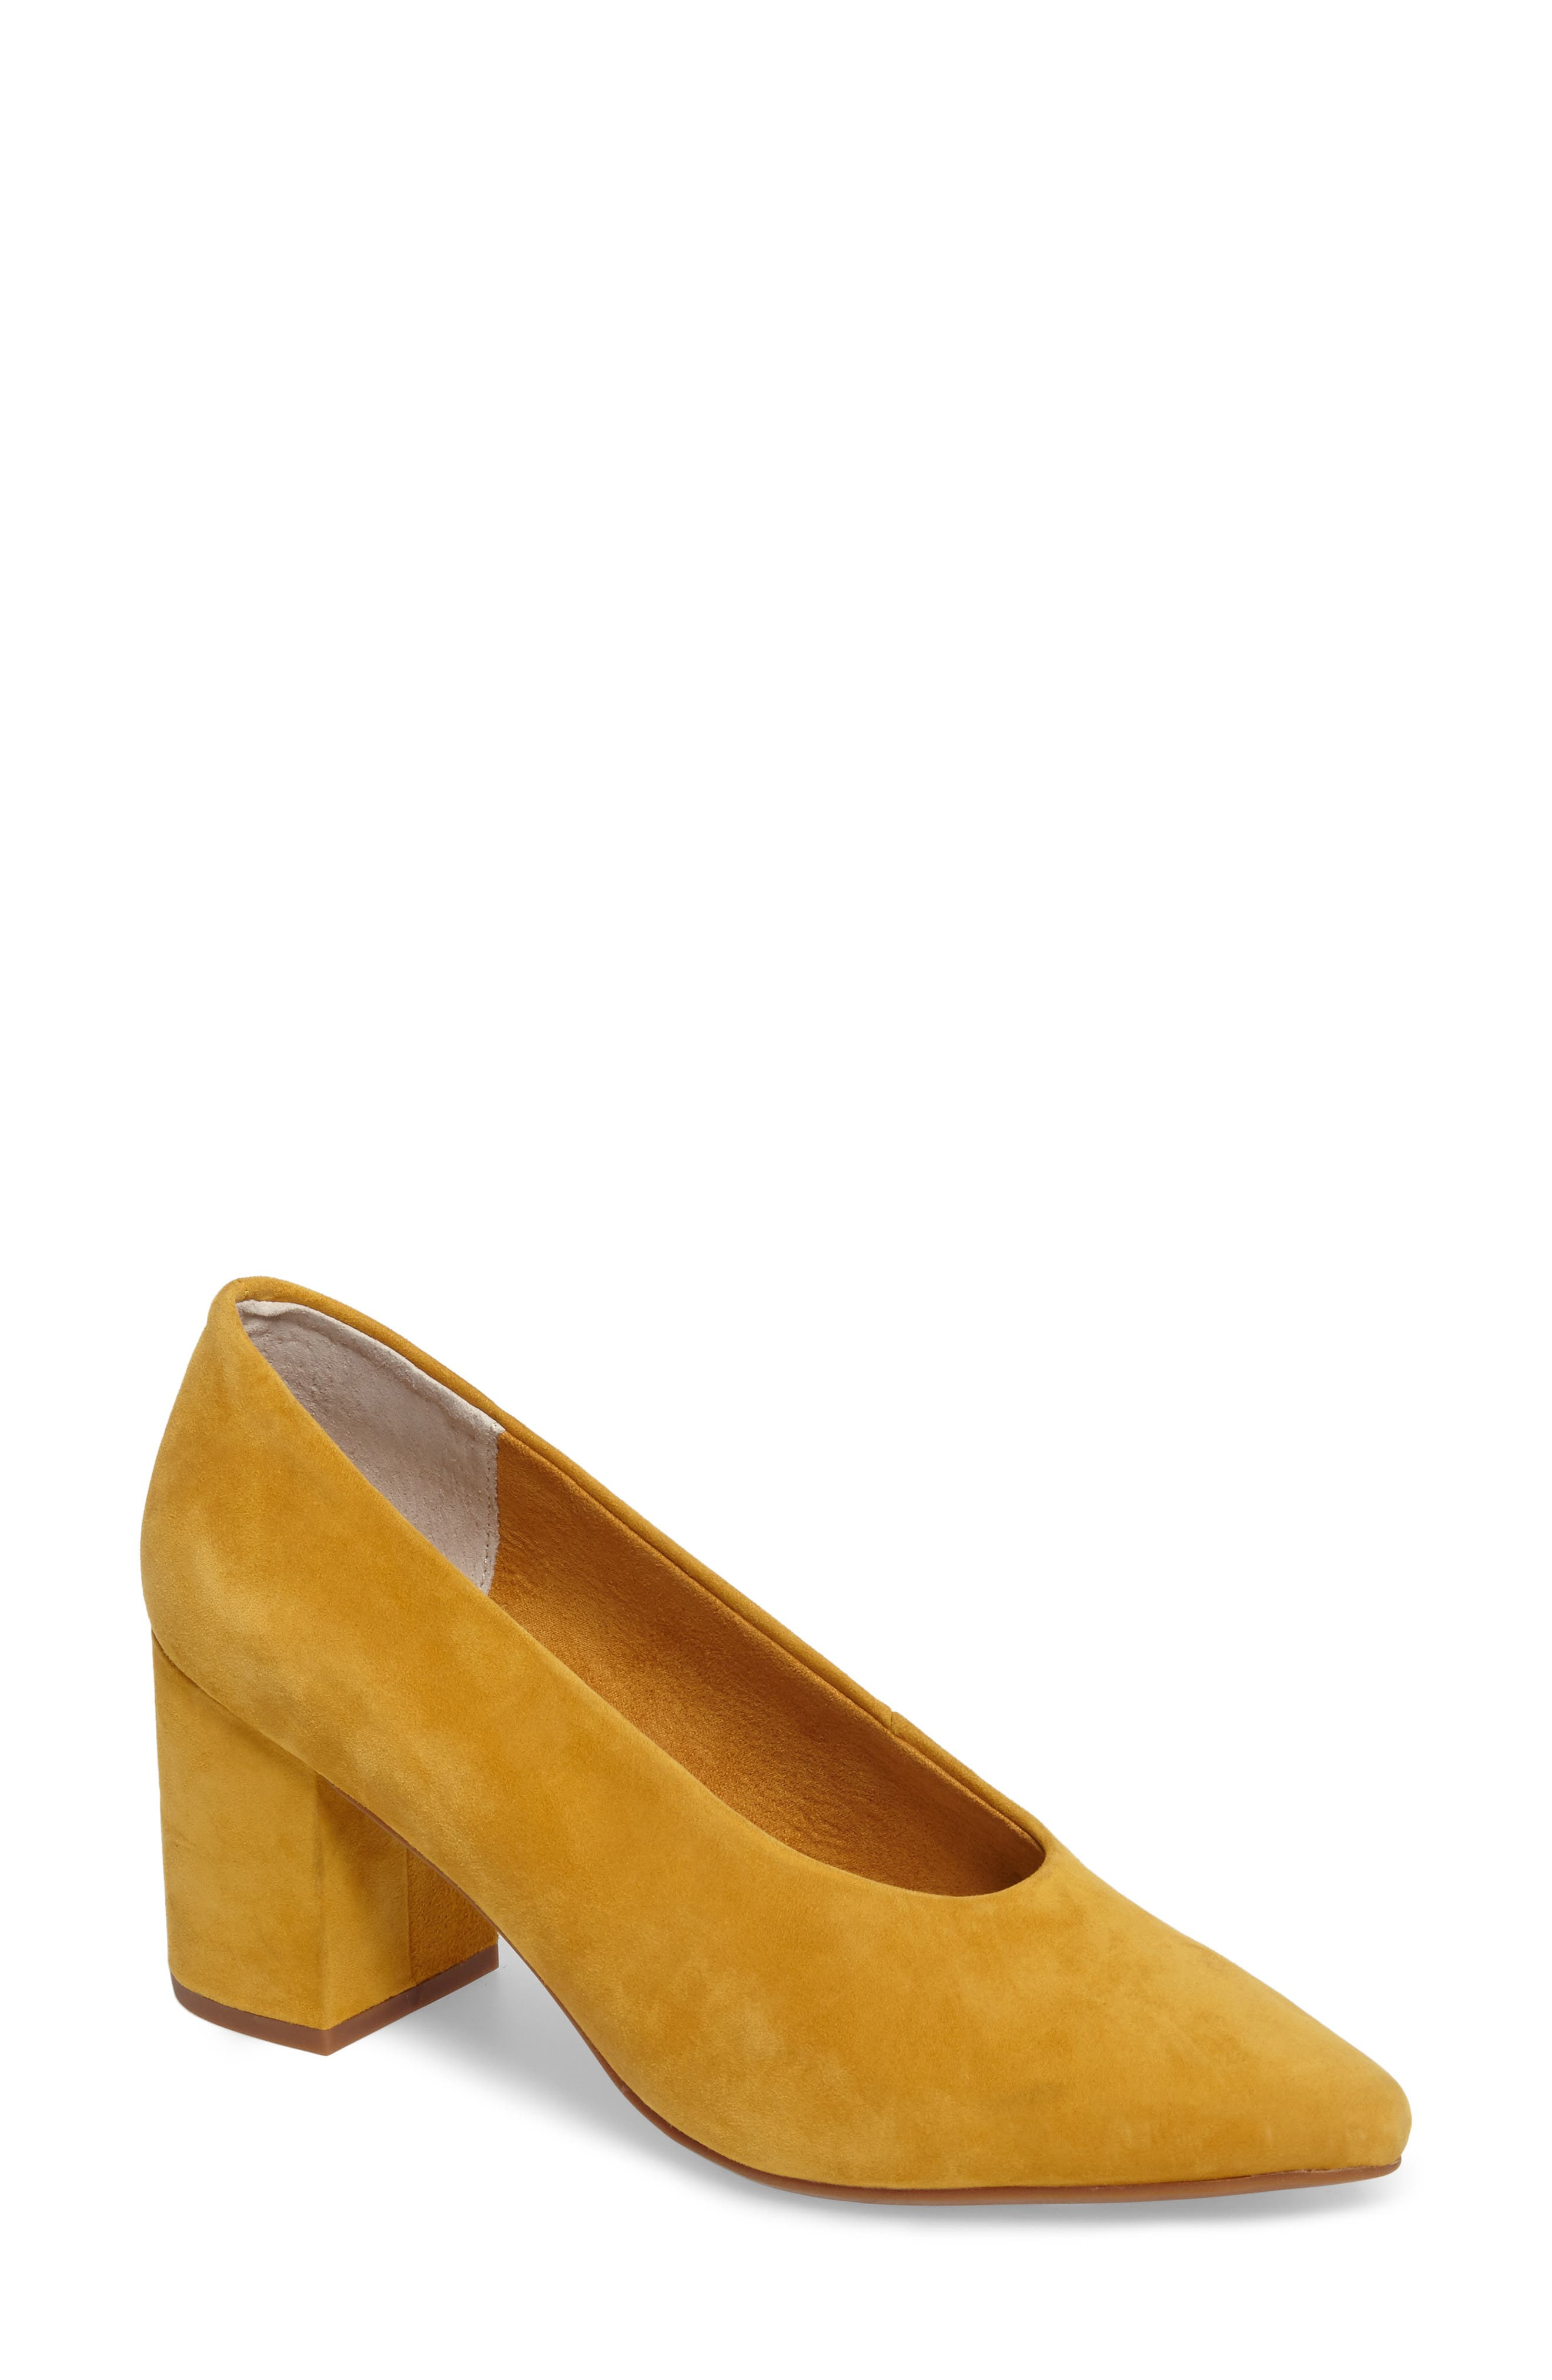 Rehearse Pointy Toe Pump,                         Main,                         color, MUSTARD SUEDE